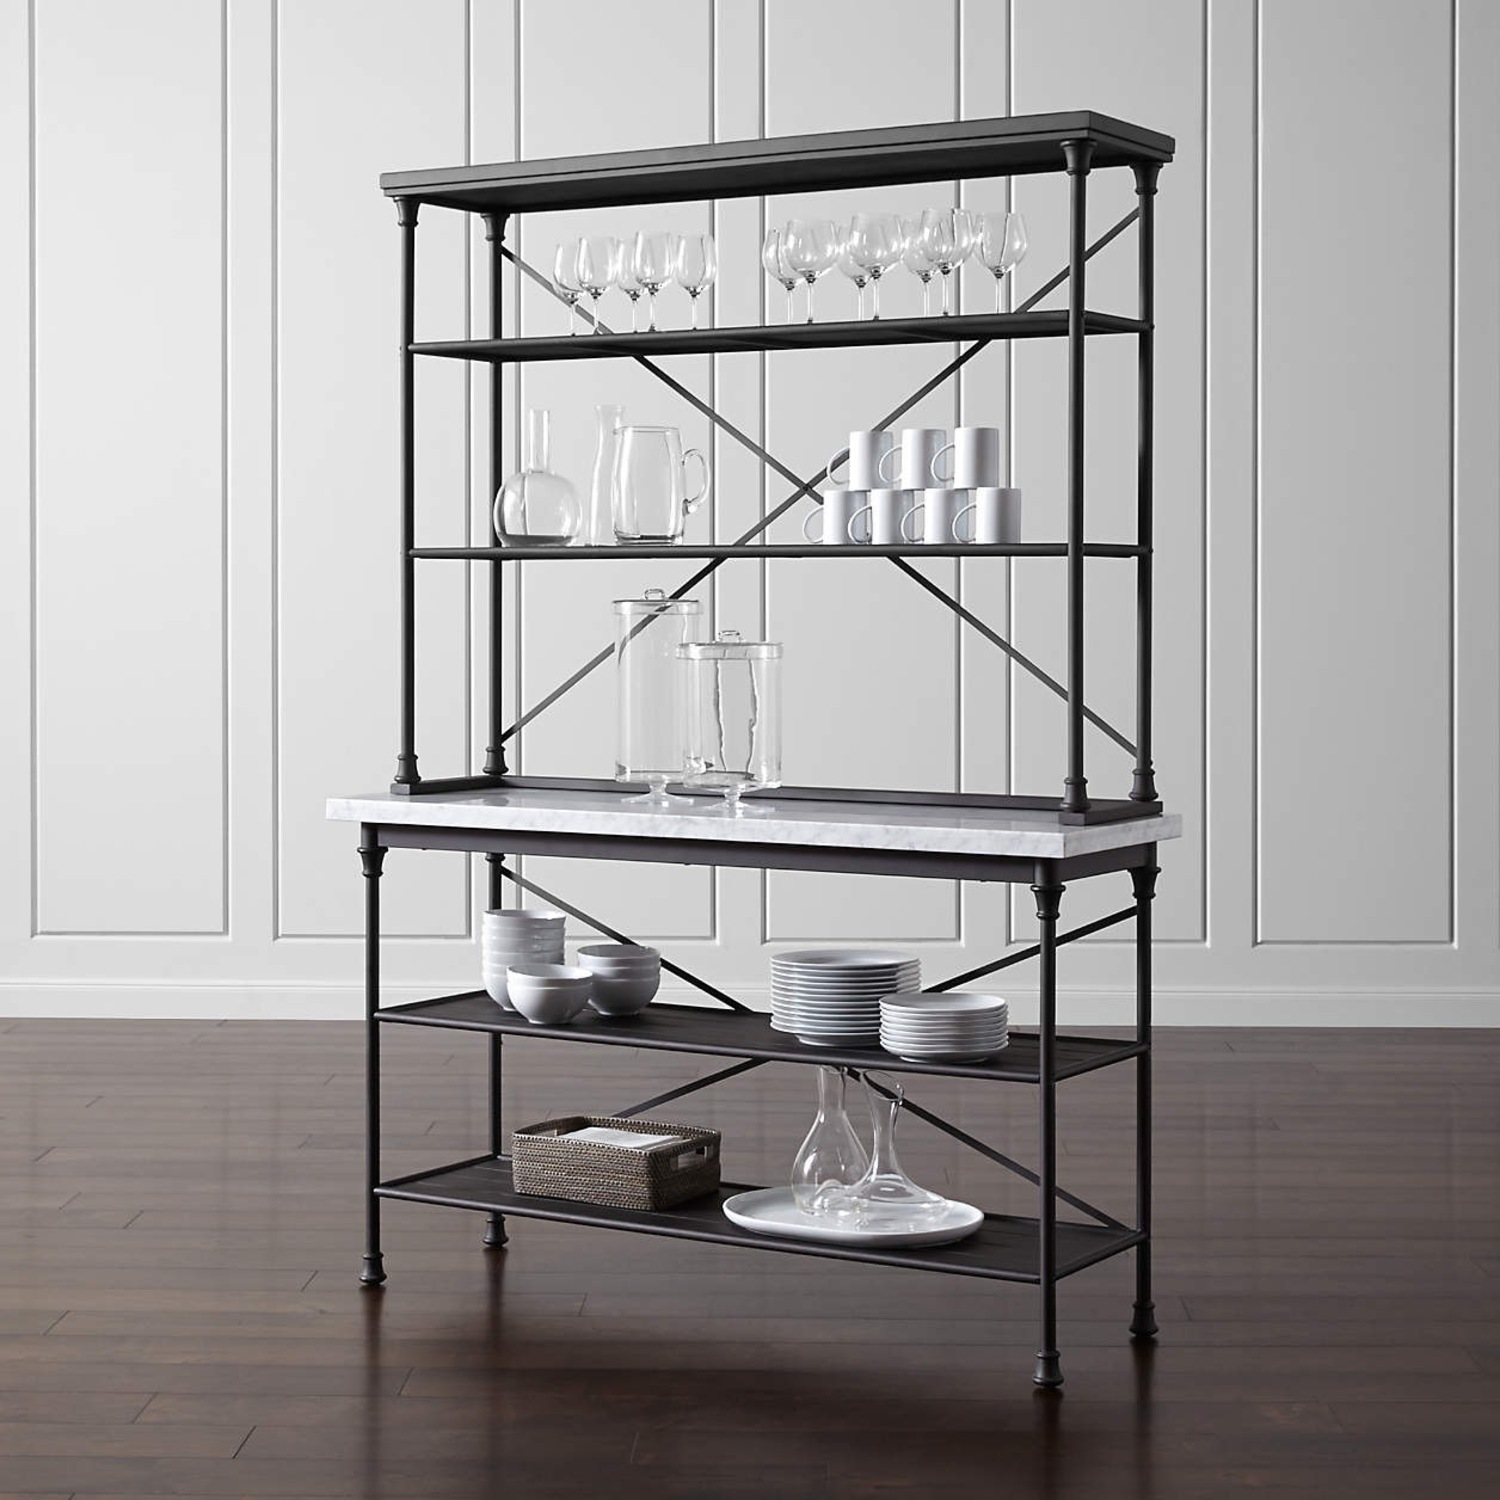 Crate & Barrel French Kitchen Bakers Rack with Hutch - image-0